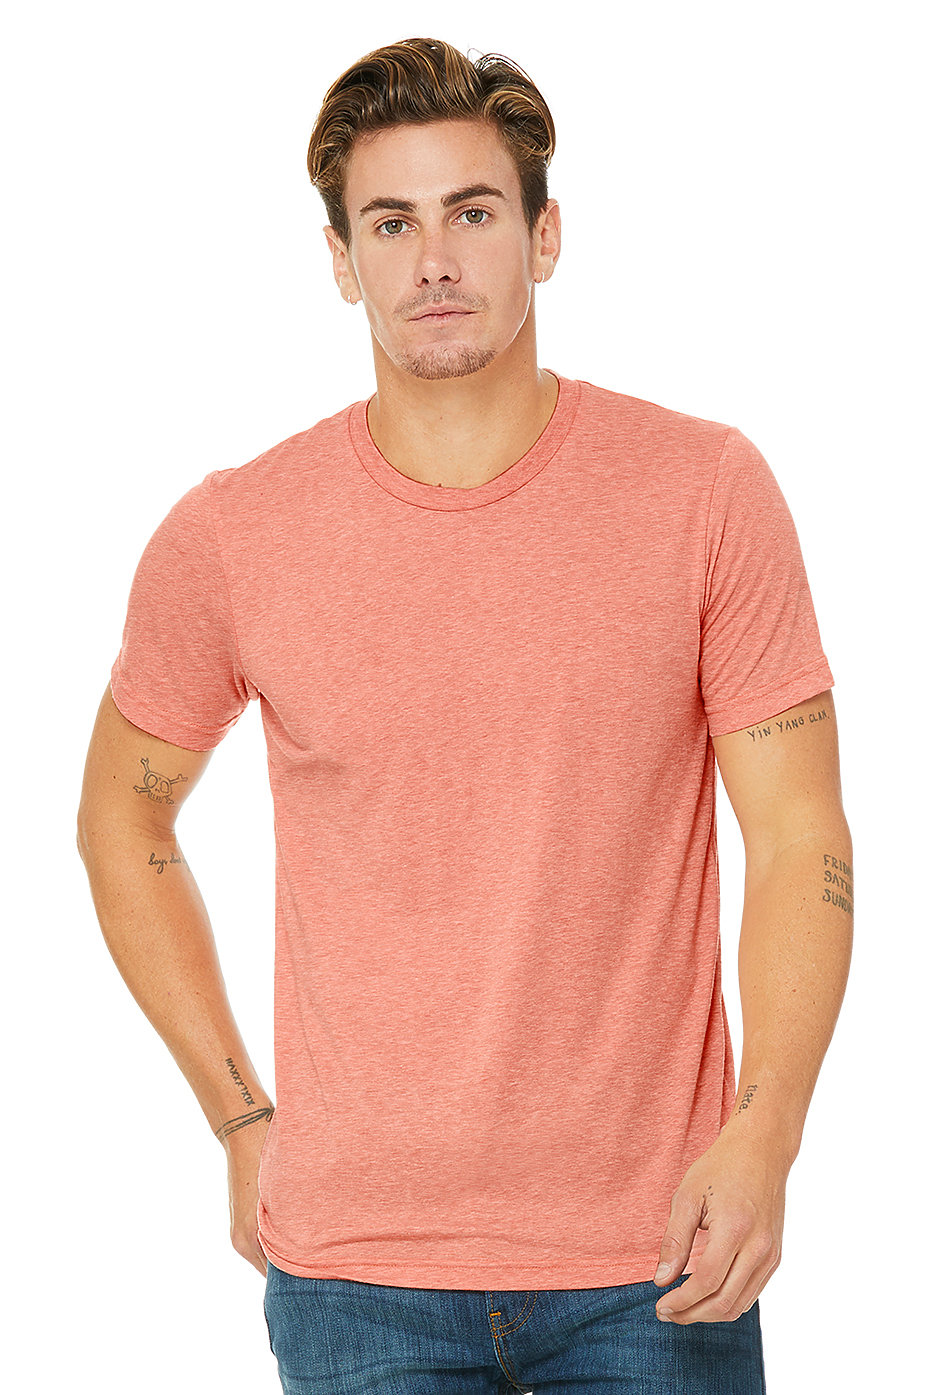 Quality wholesale blank t-shirts and apparel at competitive prices. Blank T-shirts, tank tops, dresses and clothing for Juniors, ladies, men, youth and girls.